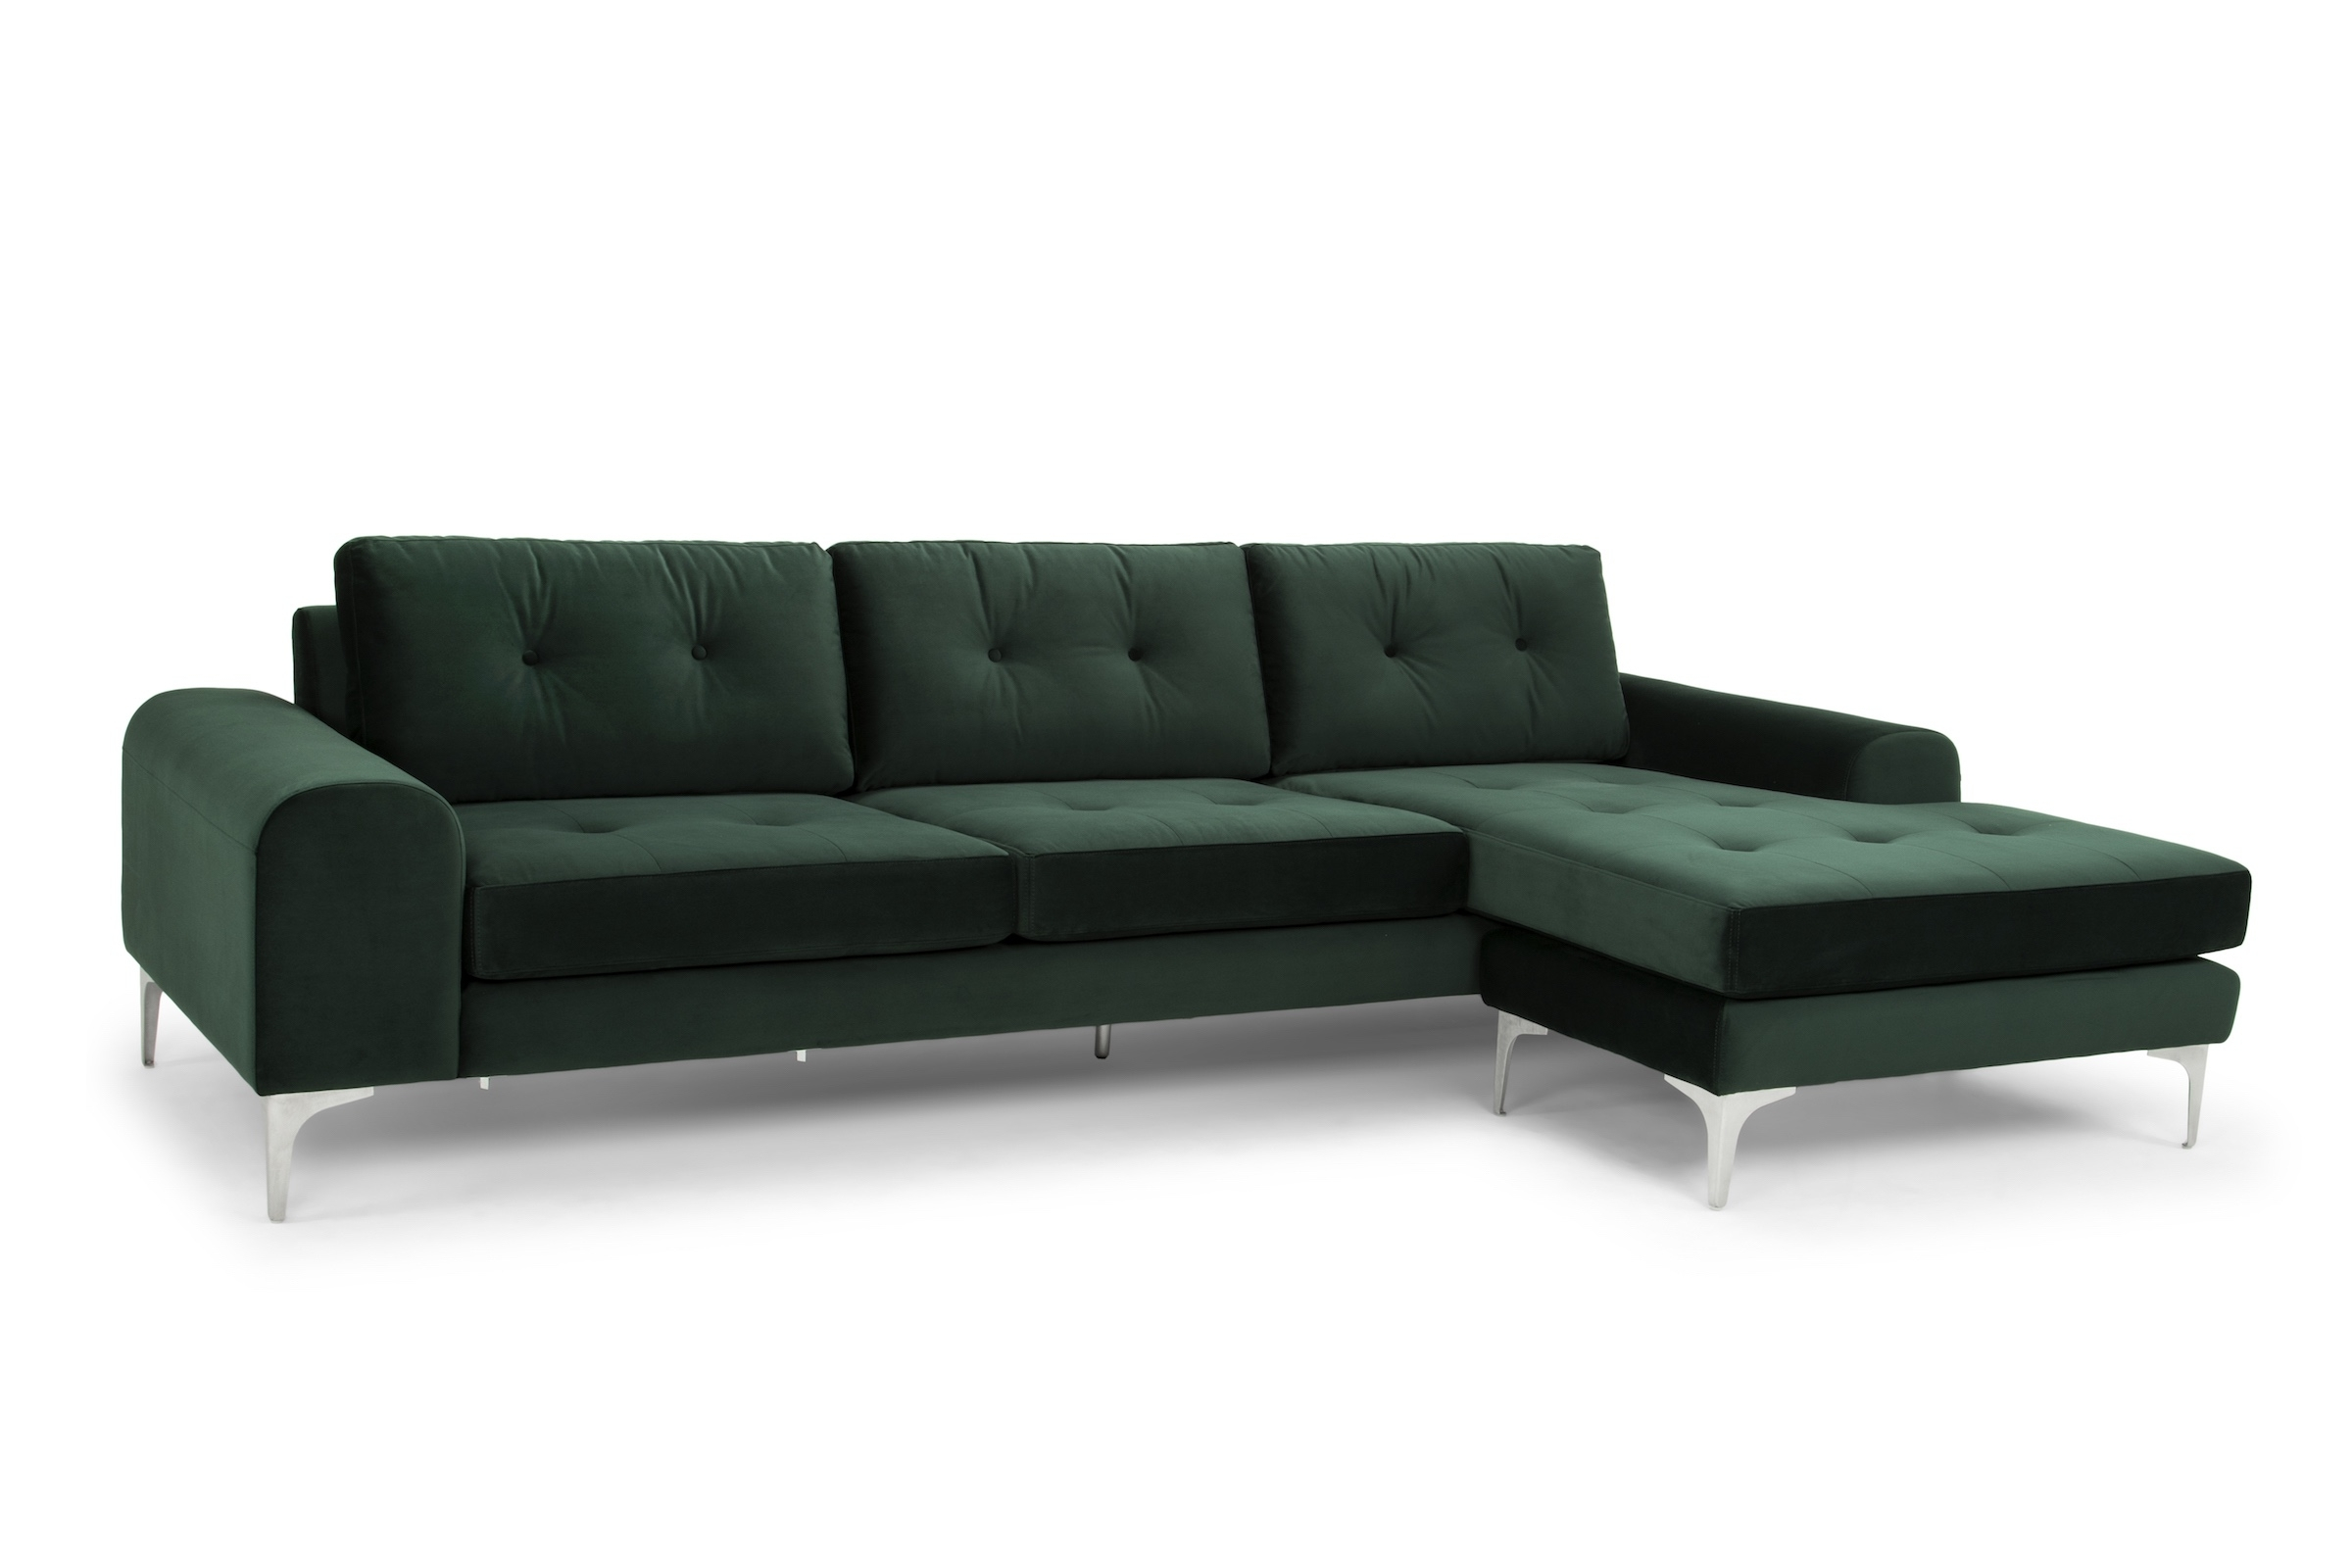 Visalia Ca Sectional Sofas With Regard To Latest Sectional Sofa In Emerald Green And Brushed Stainless – Reversible (View 15 of 15)